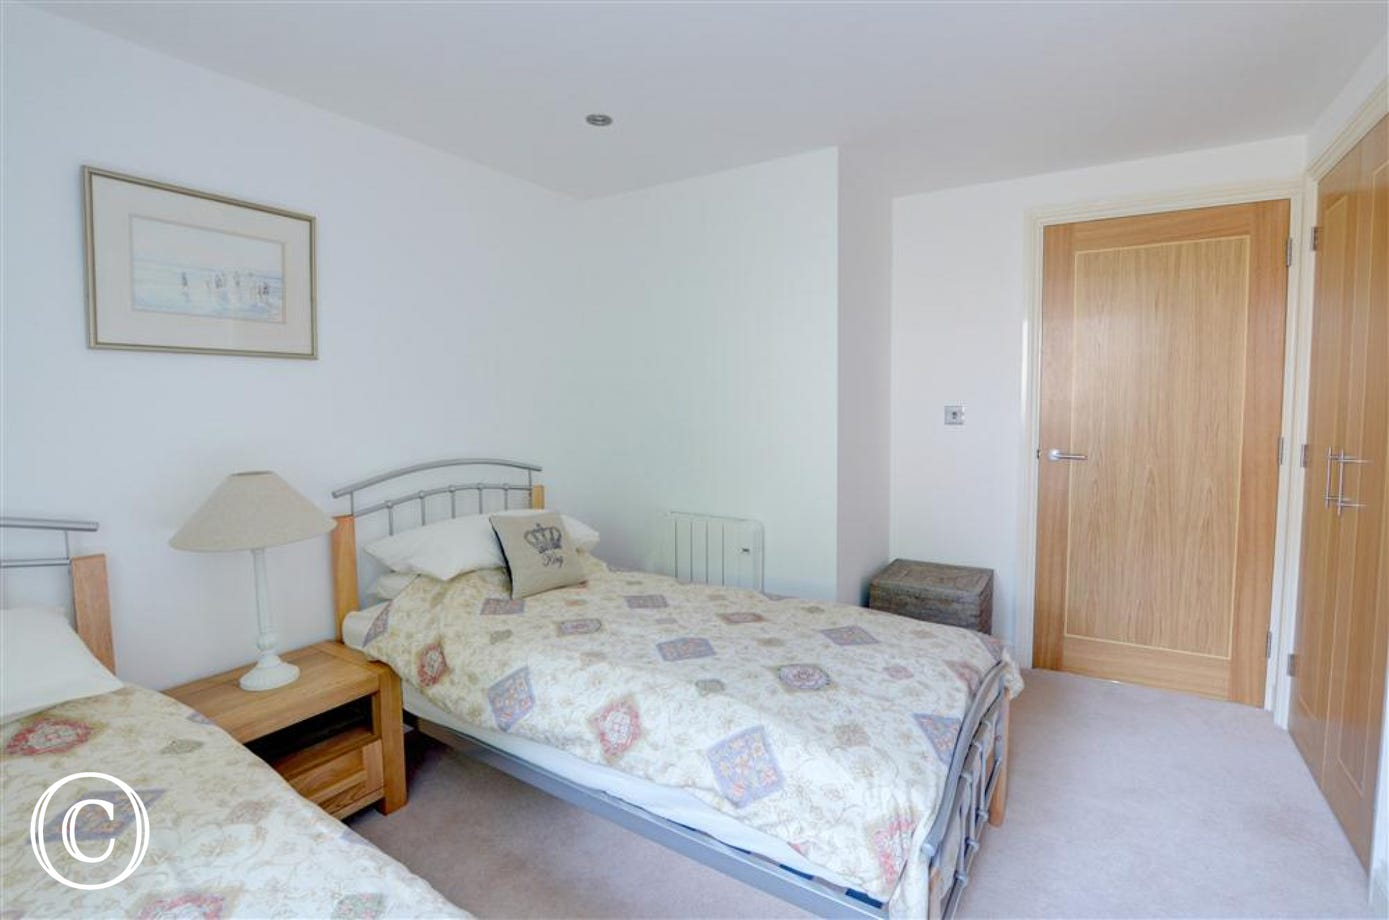 This view shows the twin beds and stylish wood doors